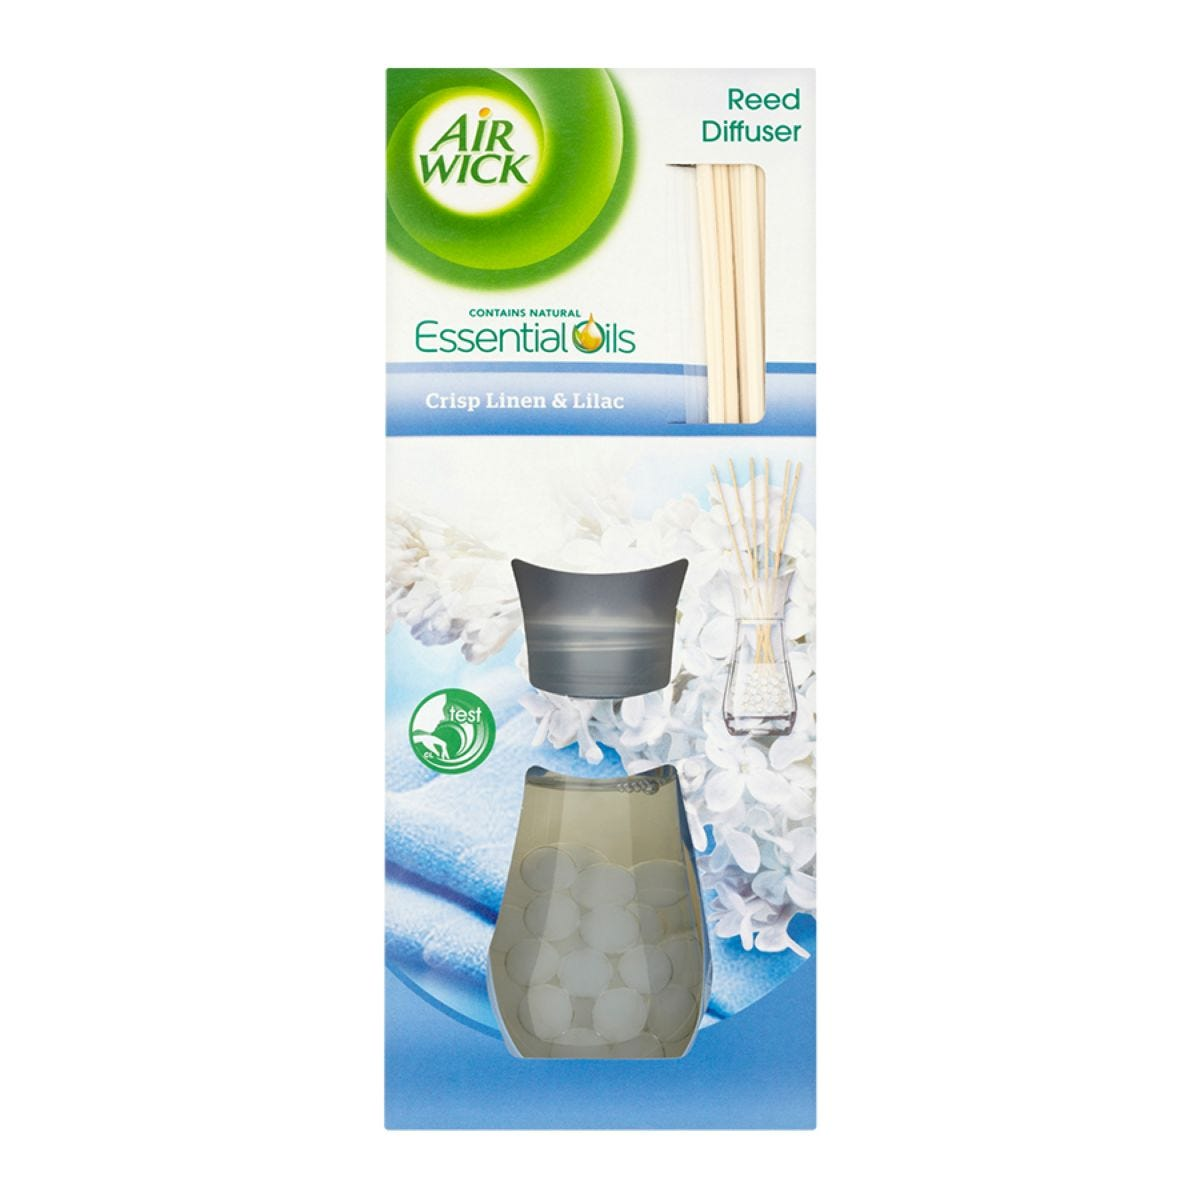 Air Wick Linen & Lilac Reed Diffuser